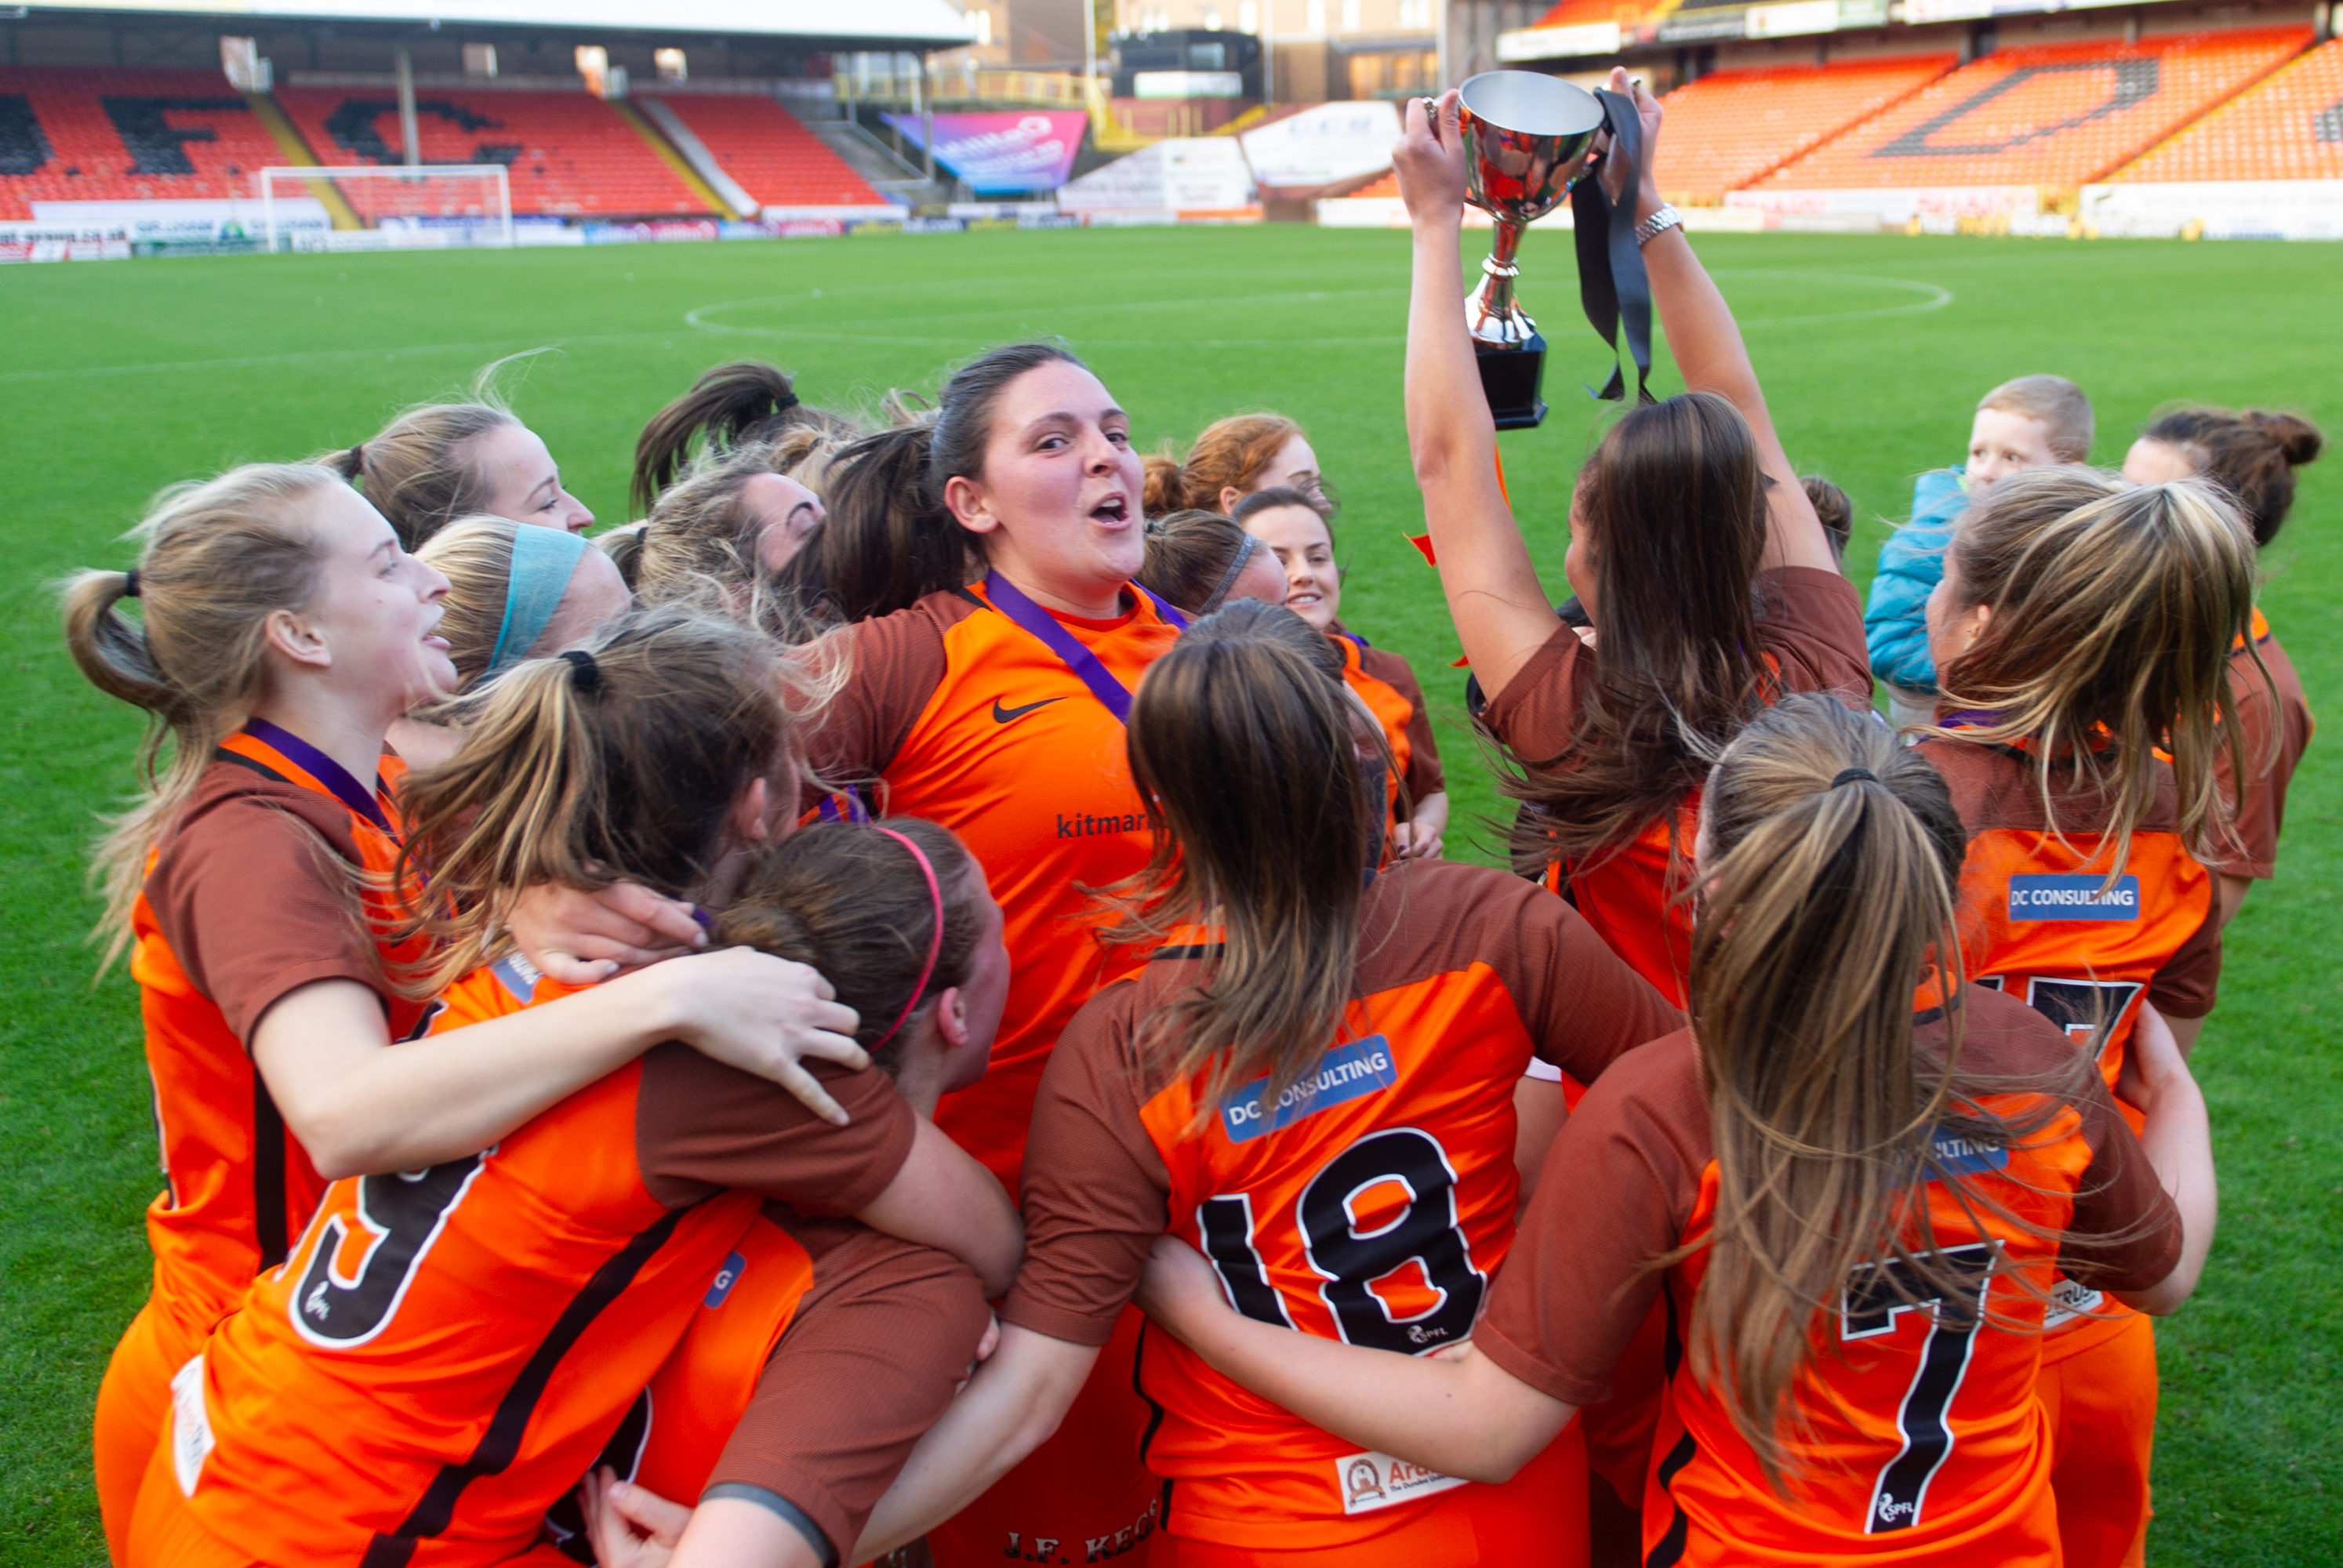 Dundee United Women FC won the SWFL trophy at Tannadice in October